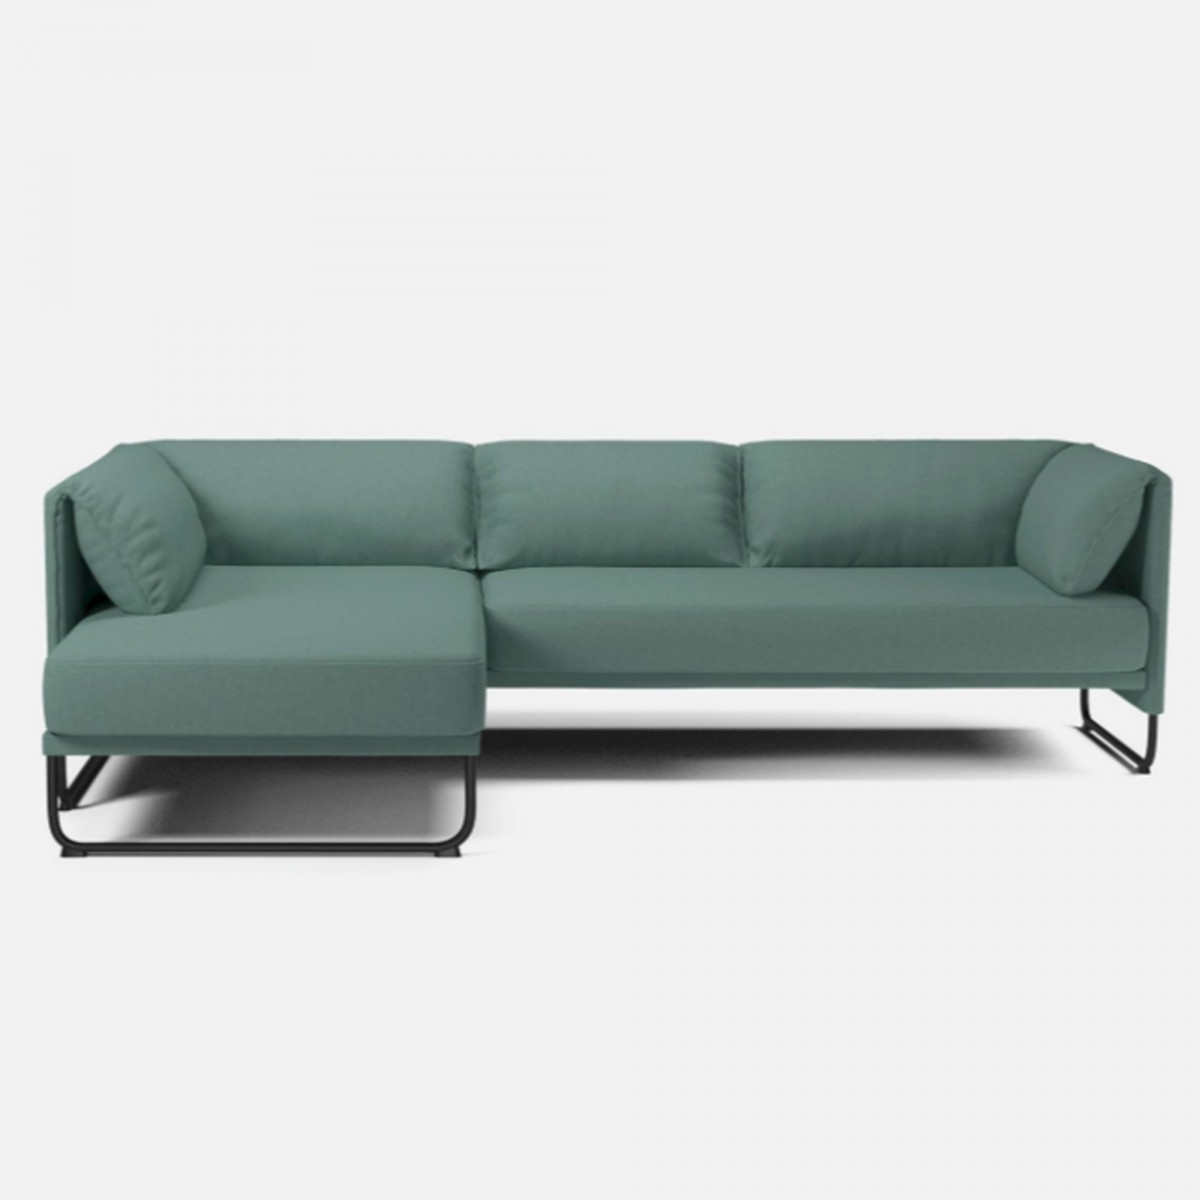 Mara sofa 3 seats with chaise longue bolia for Chaise longue sofas